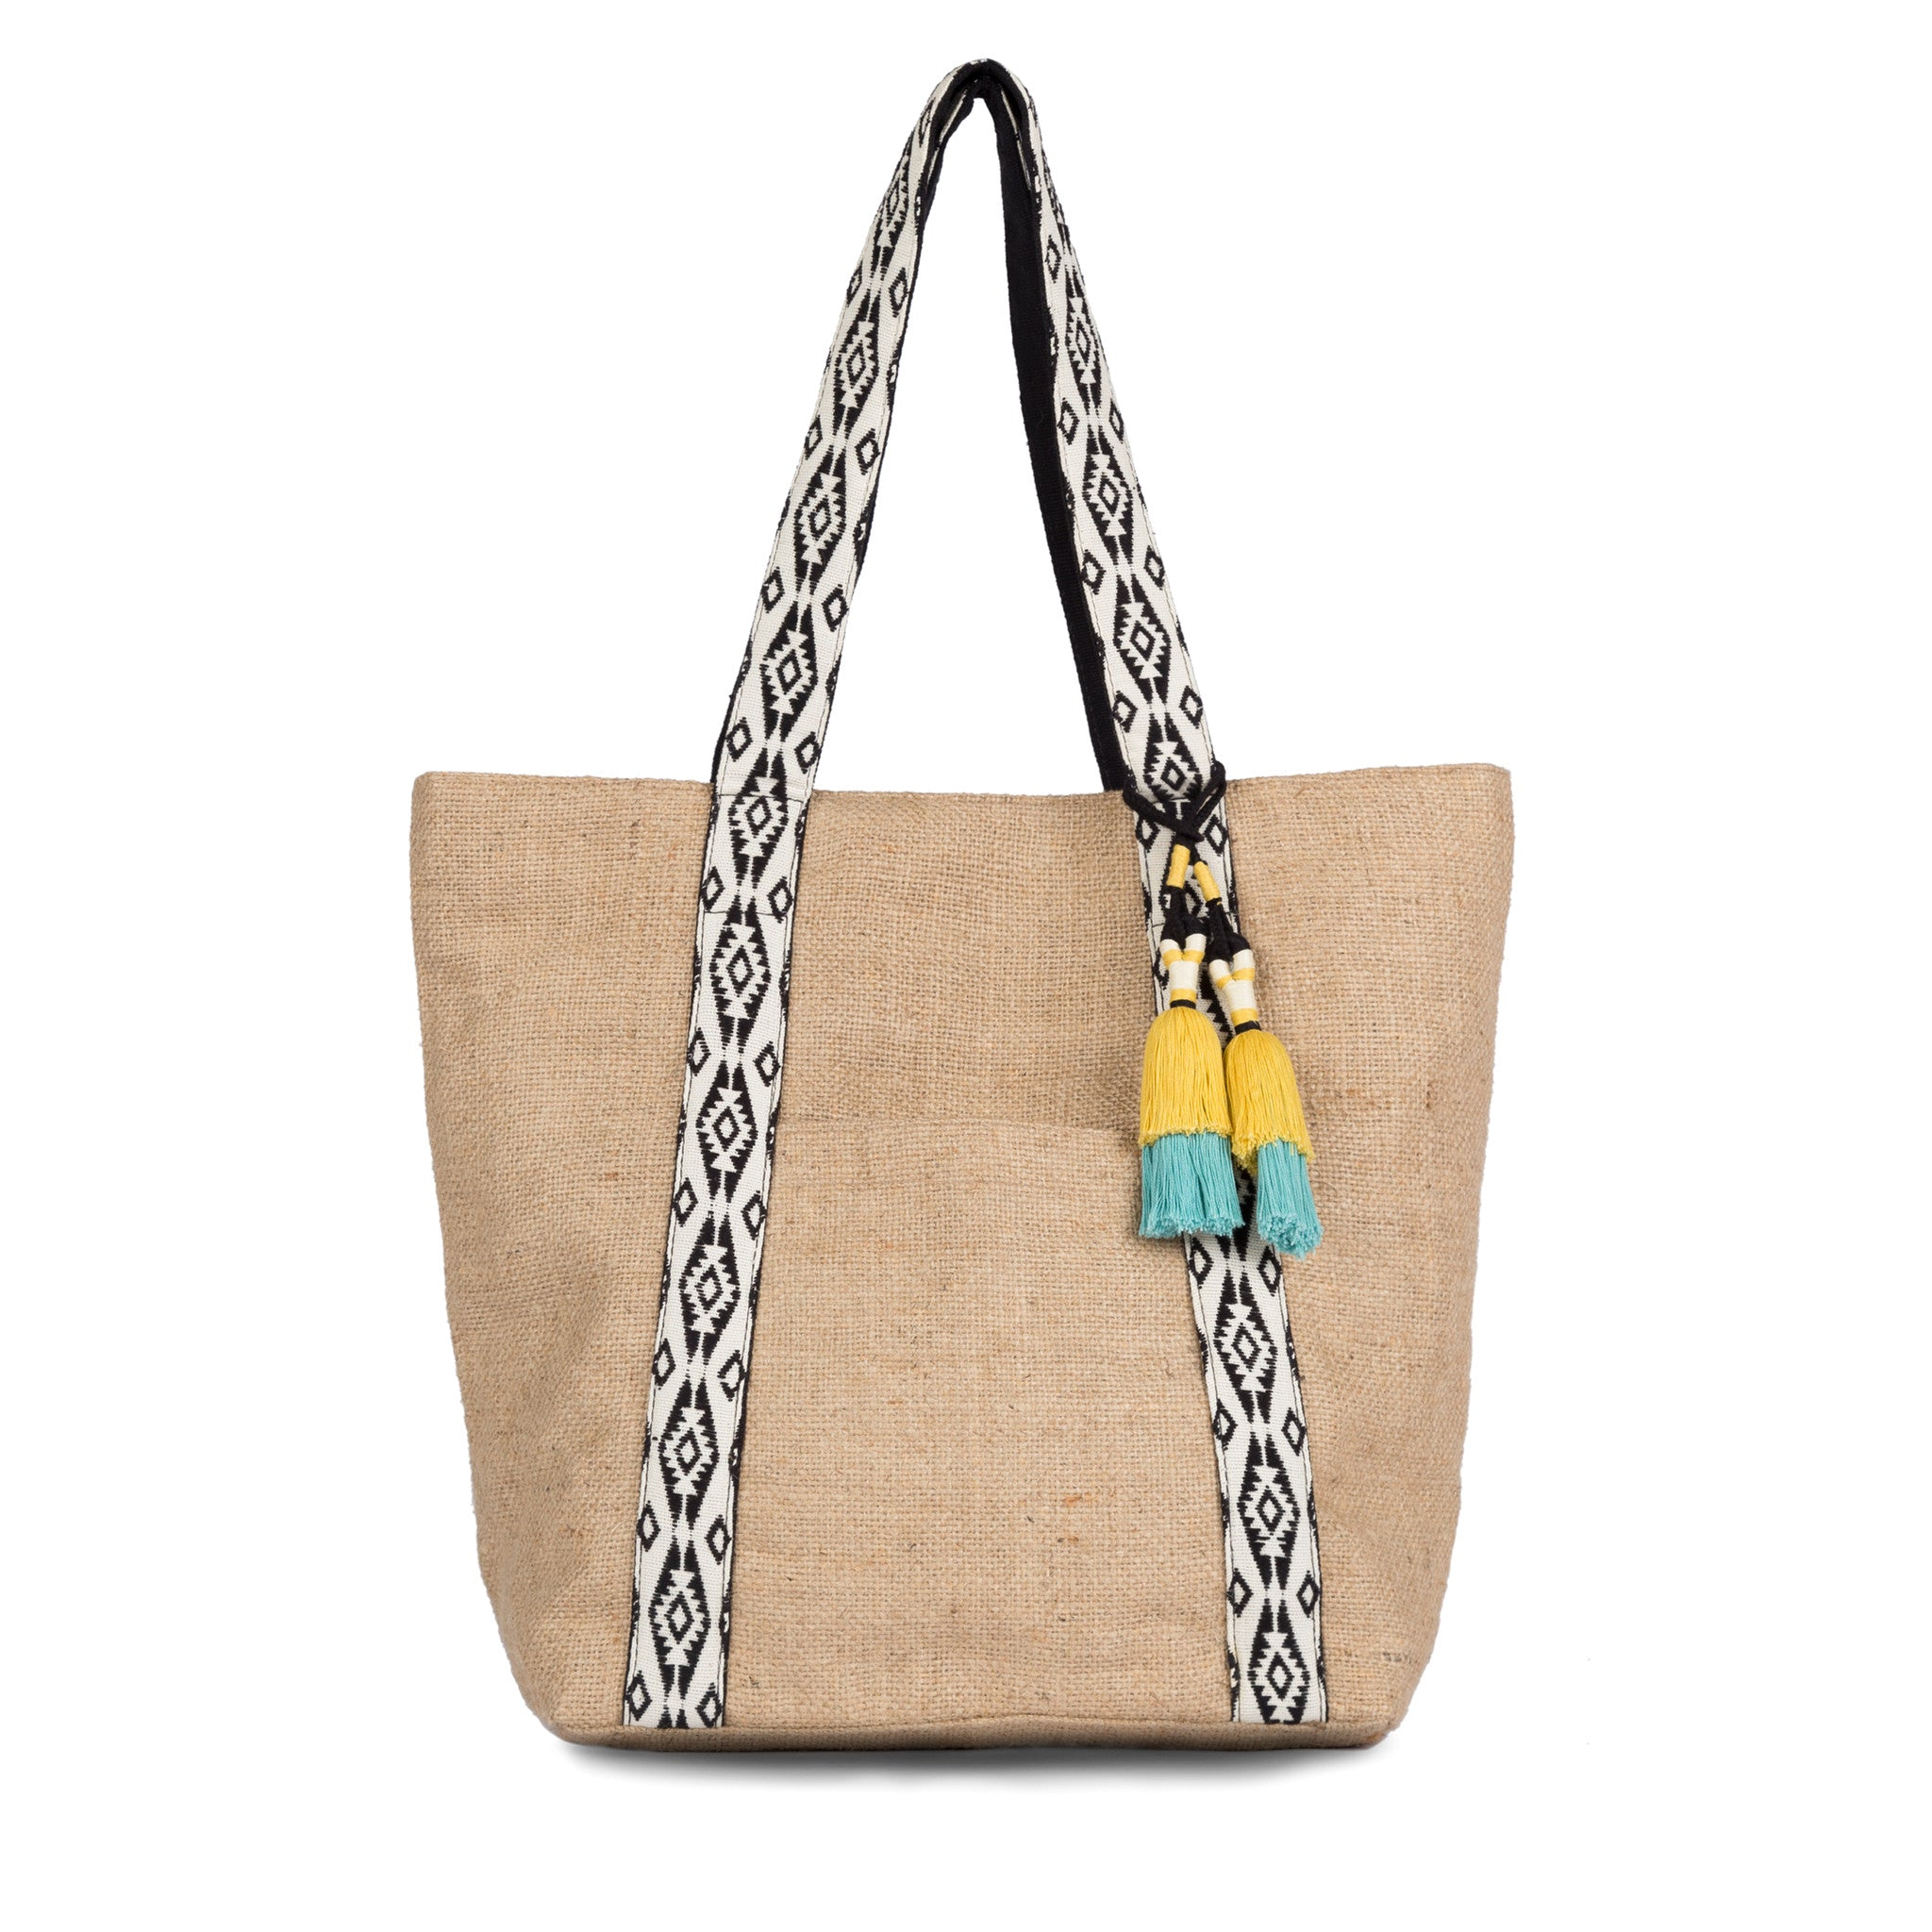 Hand woven Eva Tote - Ethical Shopping at Mercado Global